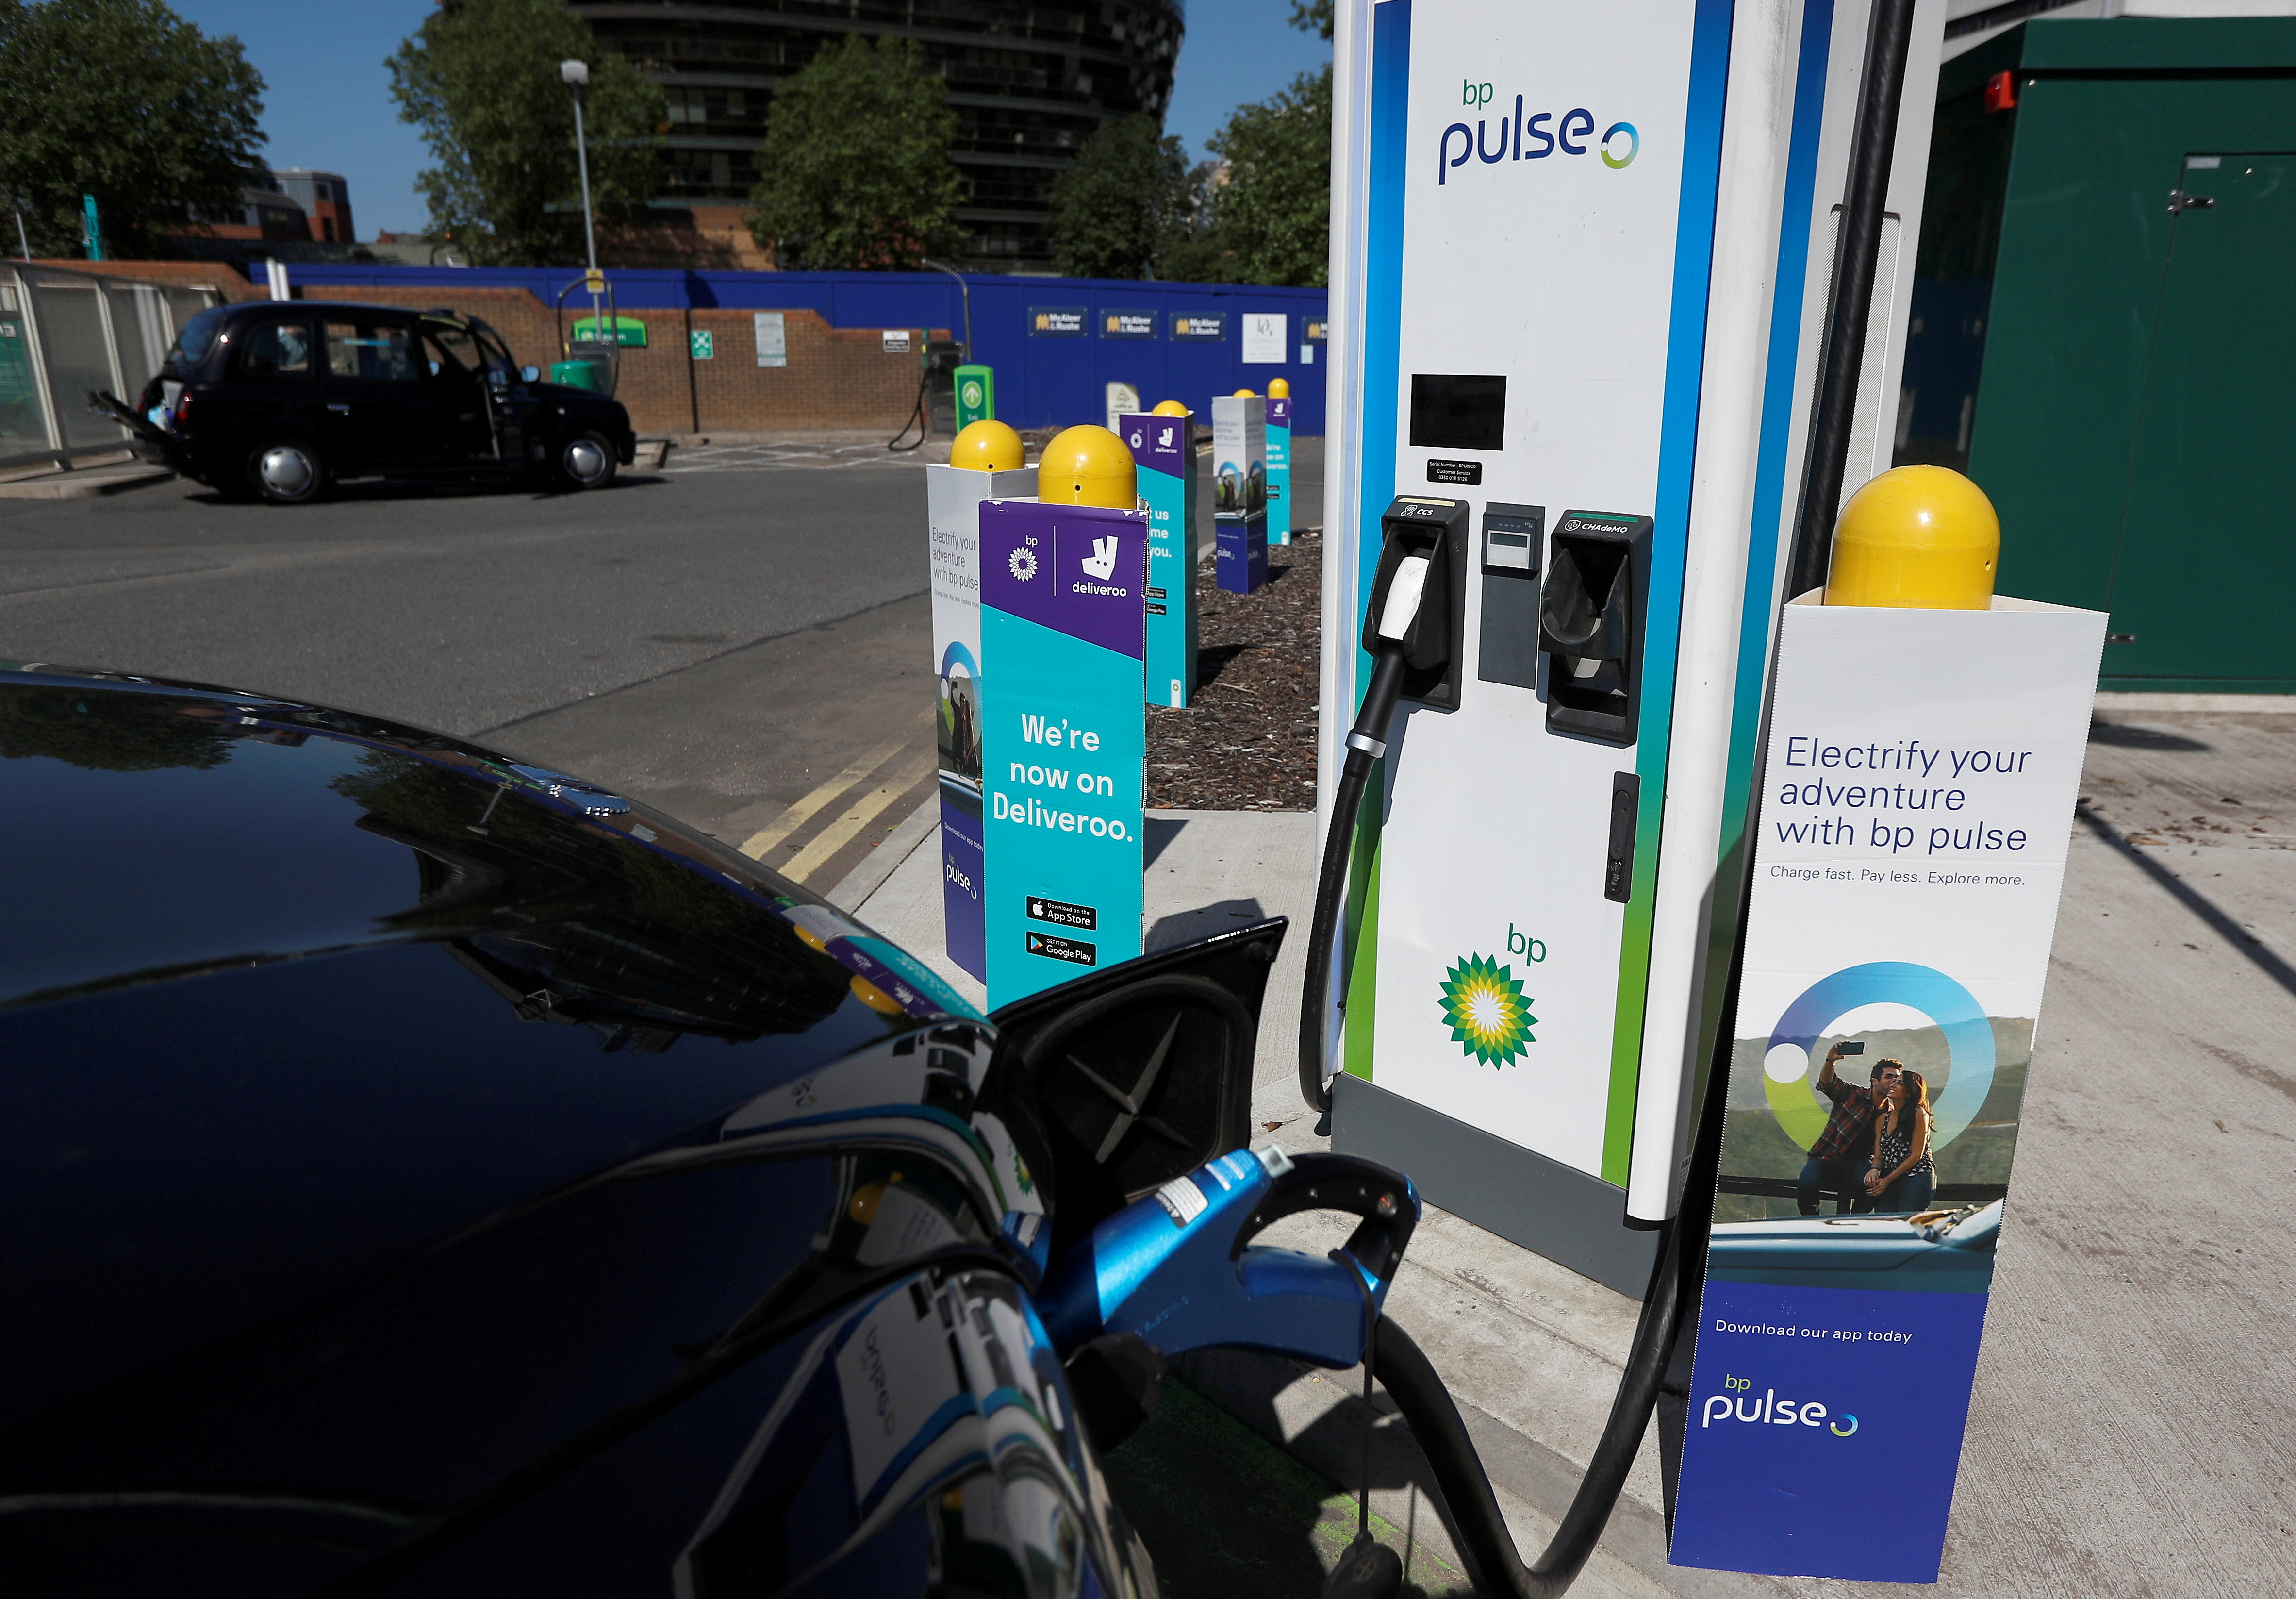 An electric powered taxi is seen being charged at a BP Pulse electric vehicle charging point in London, Britain, July 16, 2021. Picture taken July 16, 2021.  REUTERS/Peter Nicholls